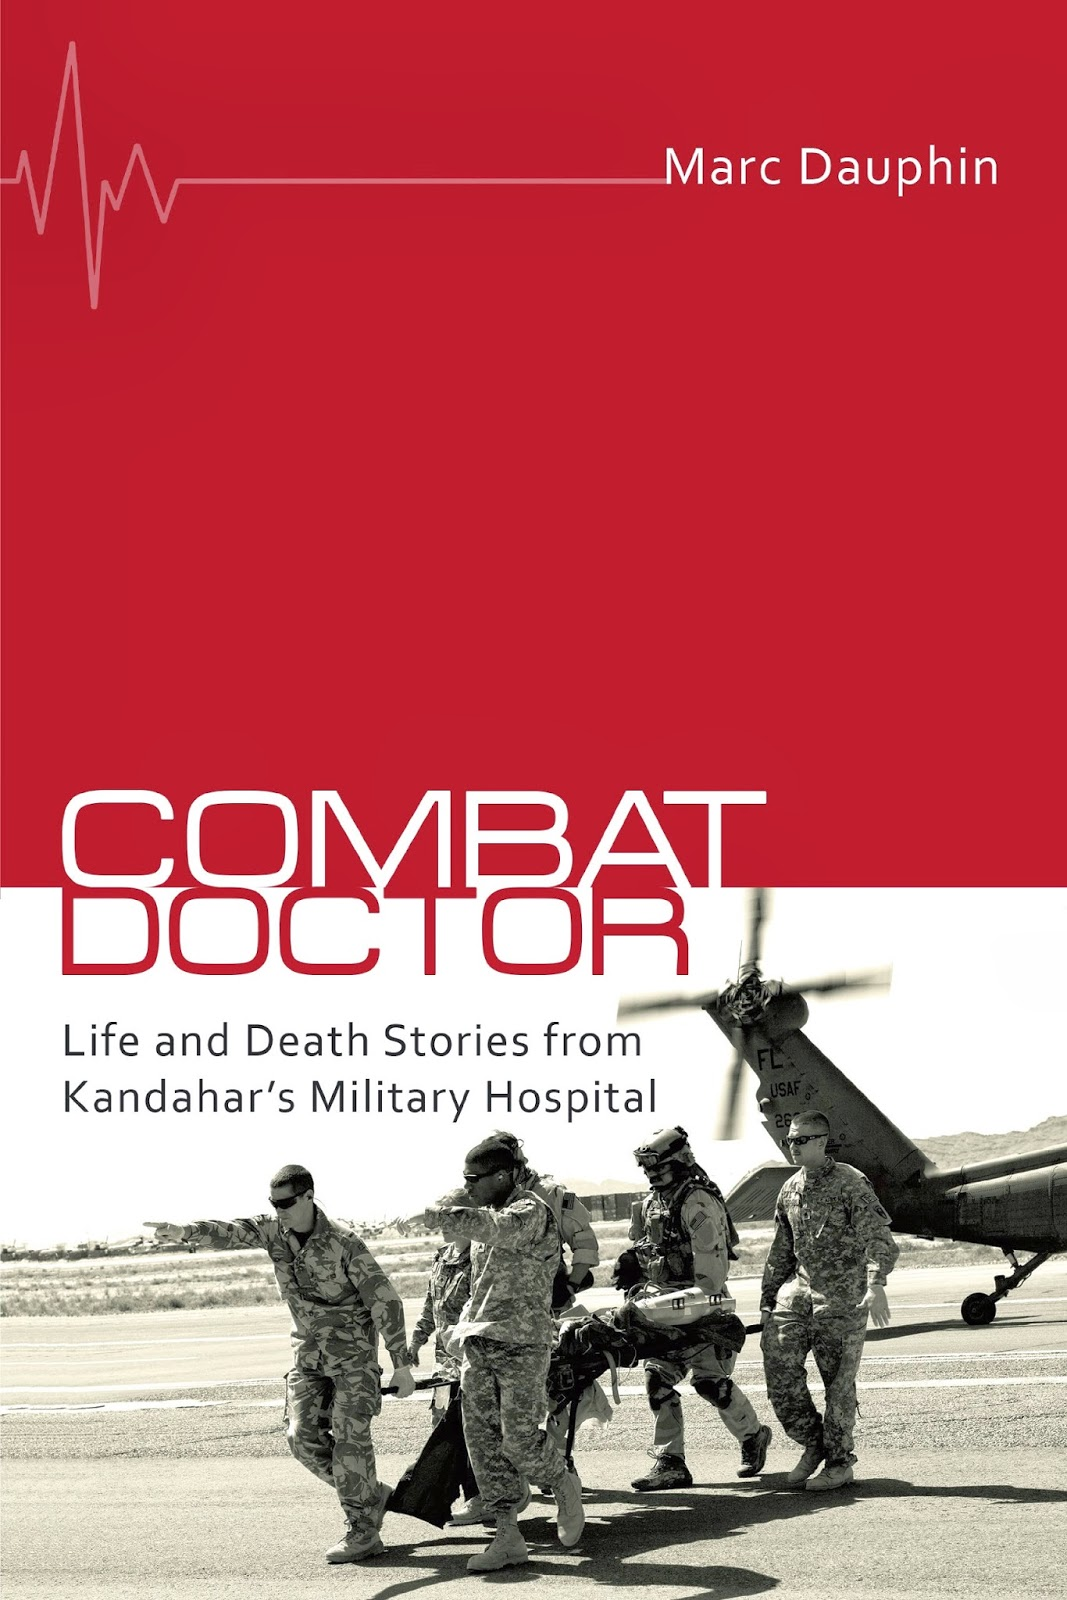 http://discover.halifaxpubliclibraries.ca/?q=title:combat%20doctor%20life%20and%20death